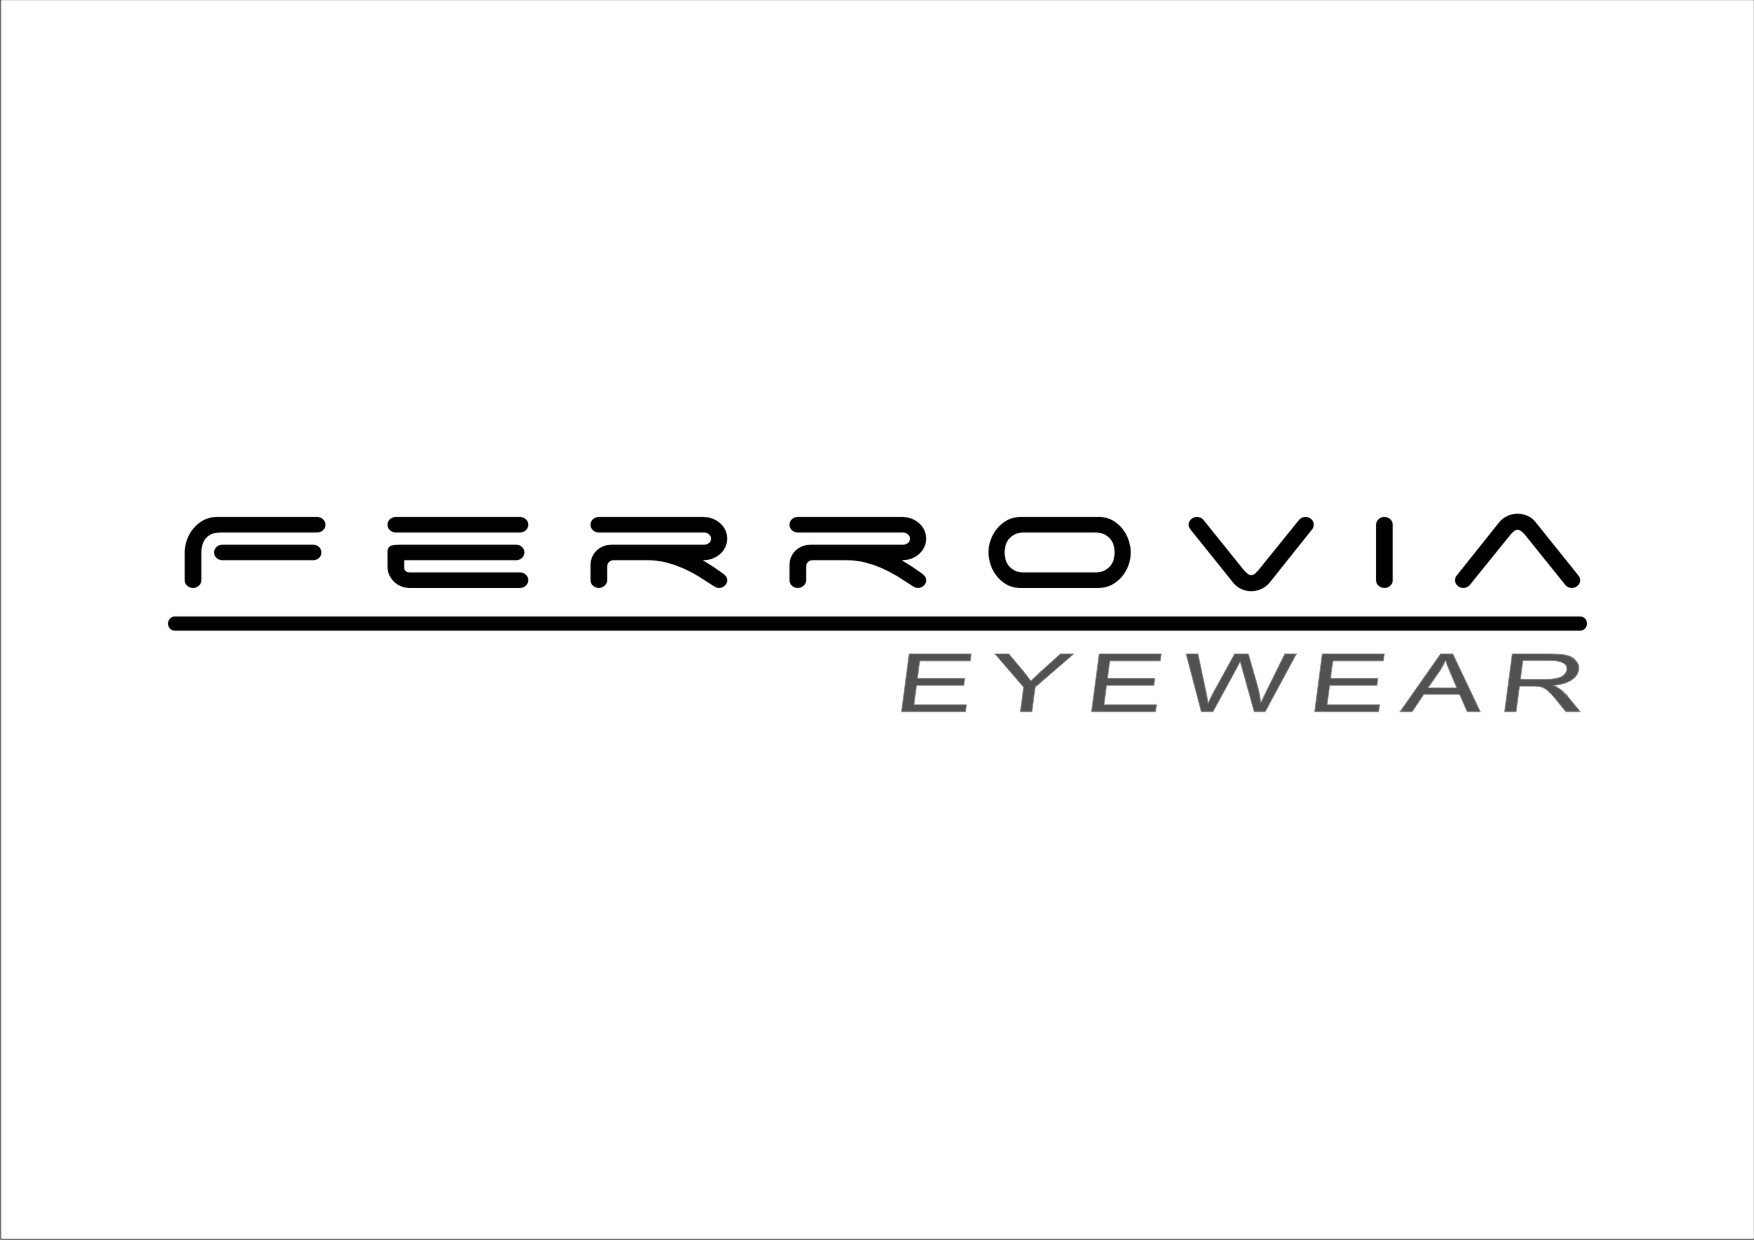 11b8f0f7e FERROVIA EYEWEAR - Reviews & Brand Information - INBRASOL ...